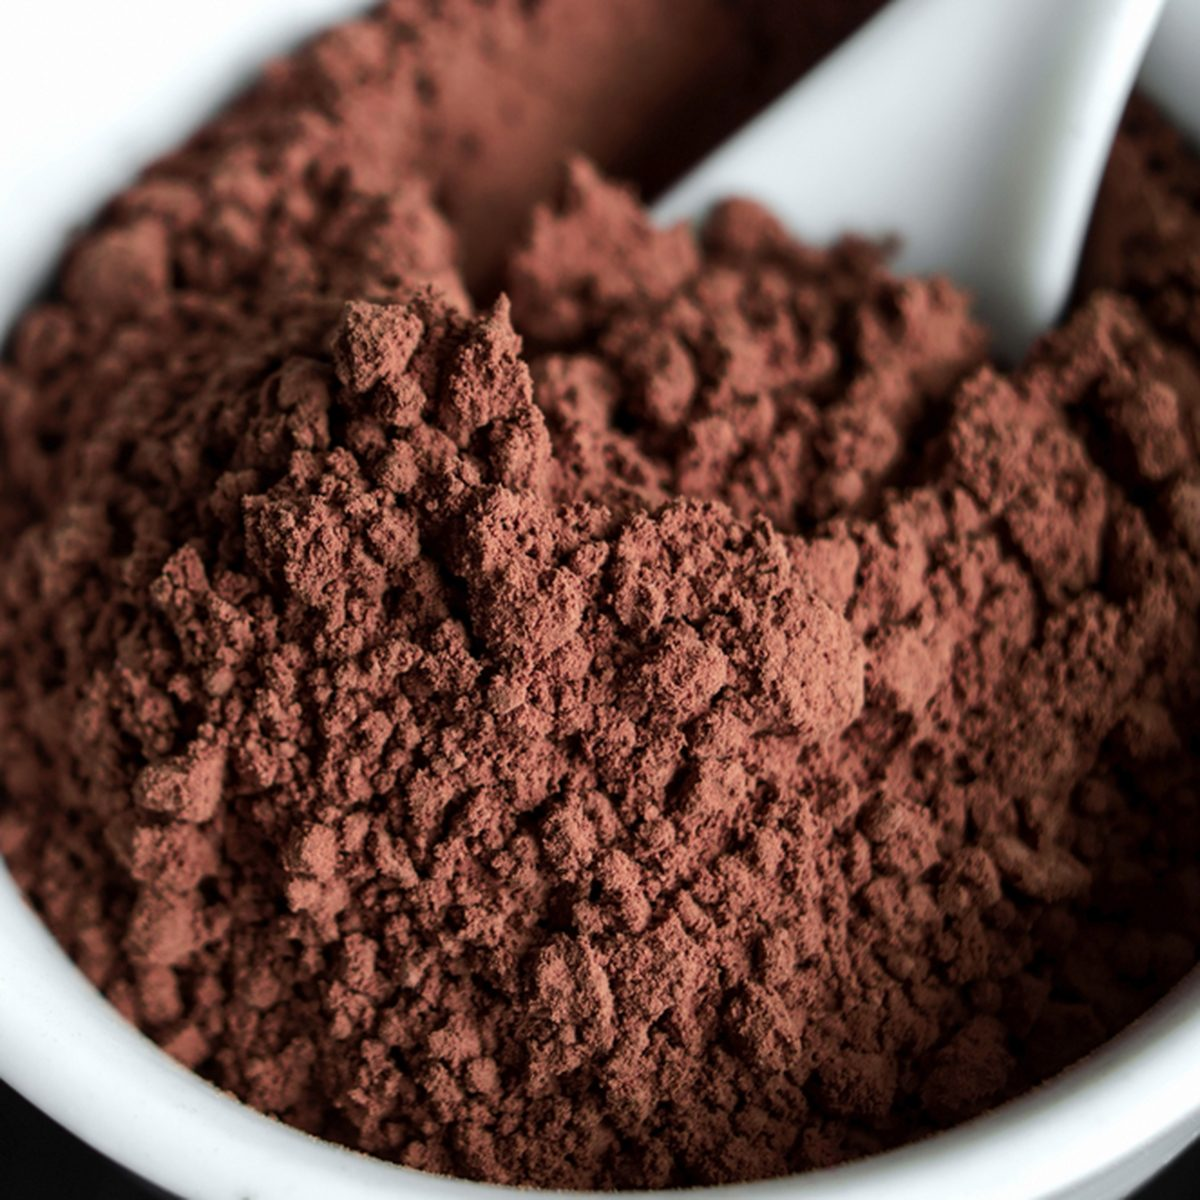 Cocoa powder in a bowl close up